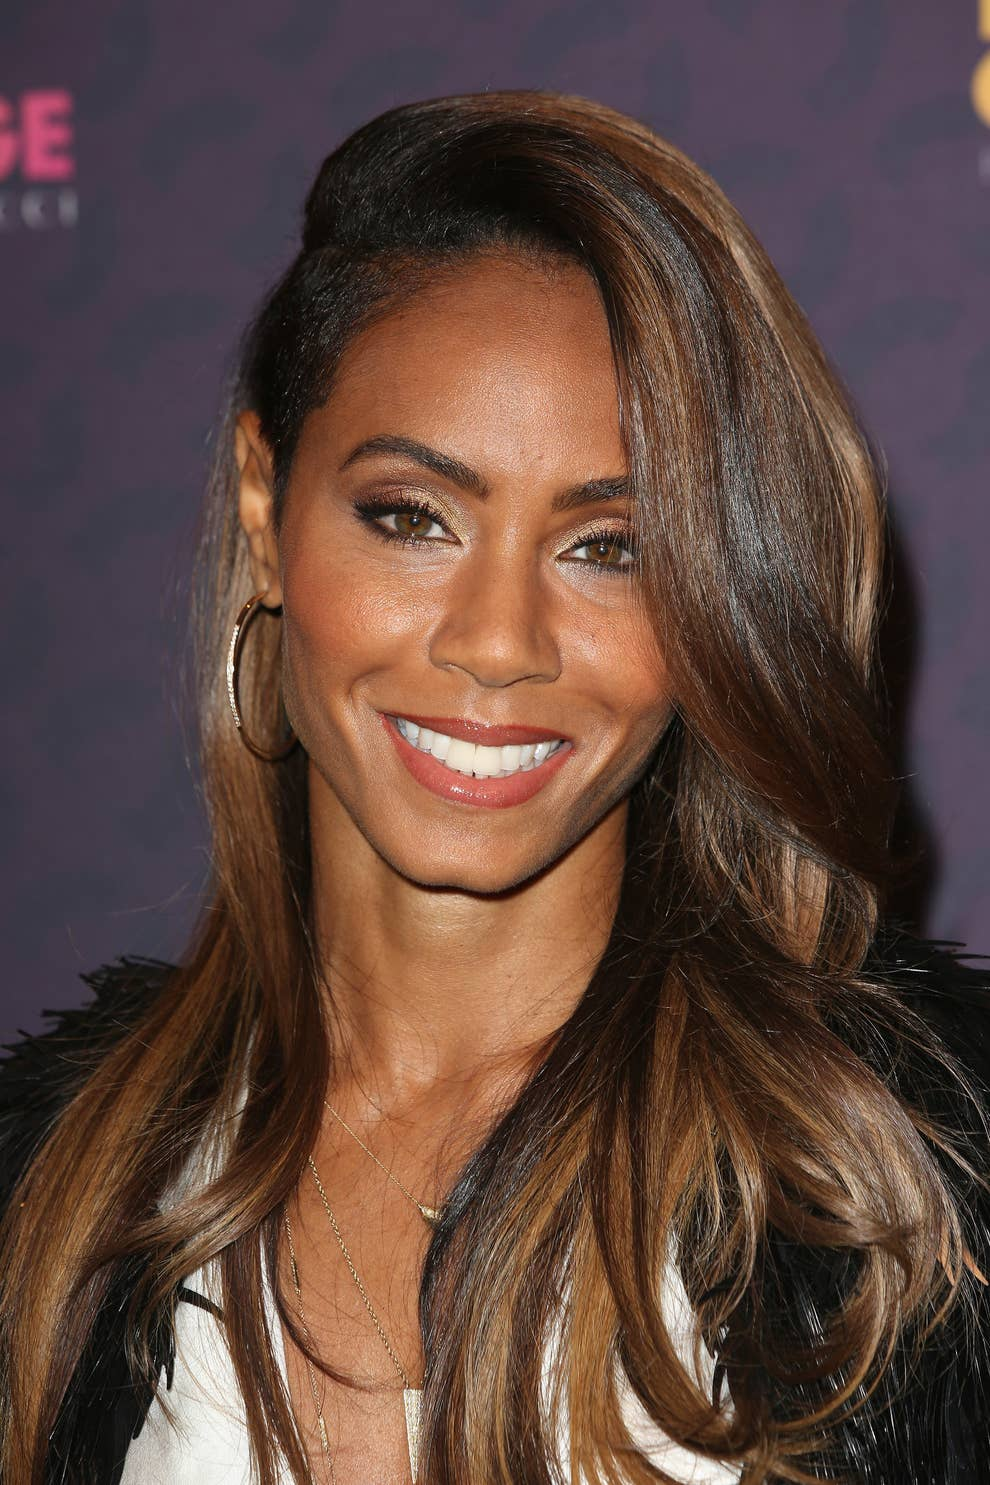 Jada Pinkett Smith Got Real About Losing Her Hair And How She Learned To Accept It